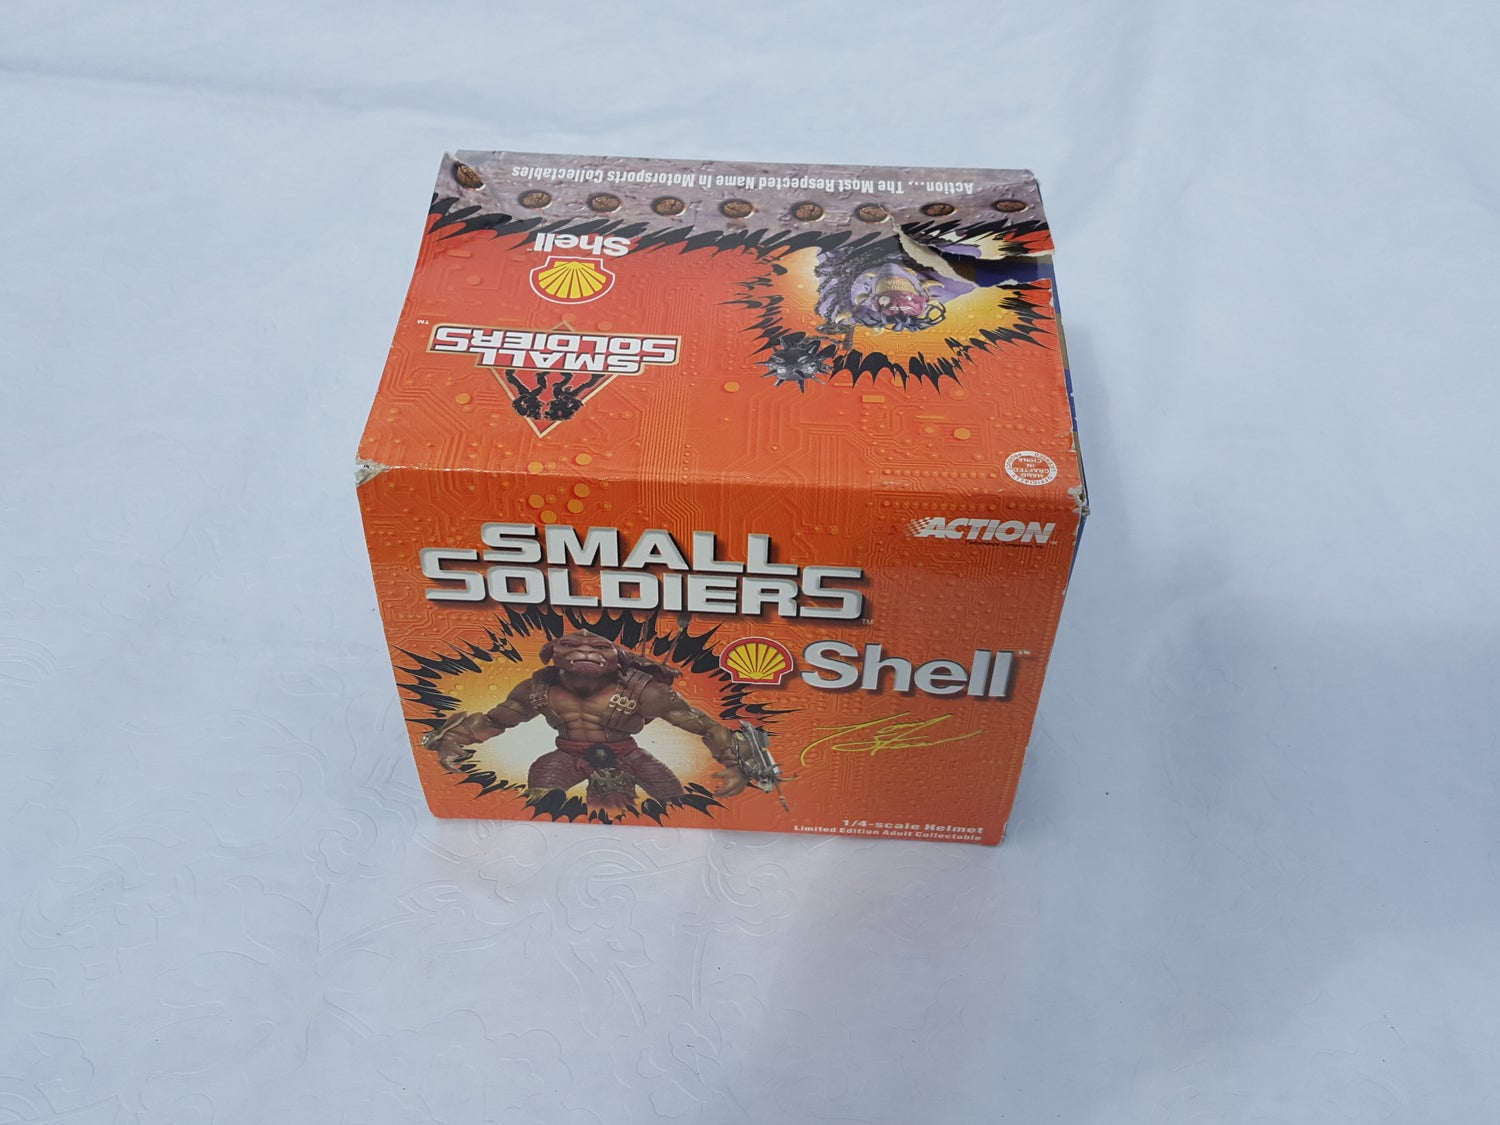 Image of 1998 Tony Stewart Small soldiers Helmet replica